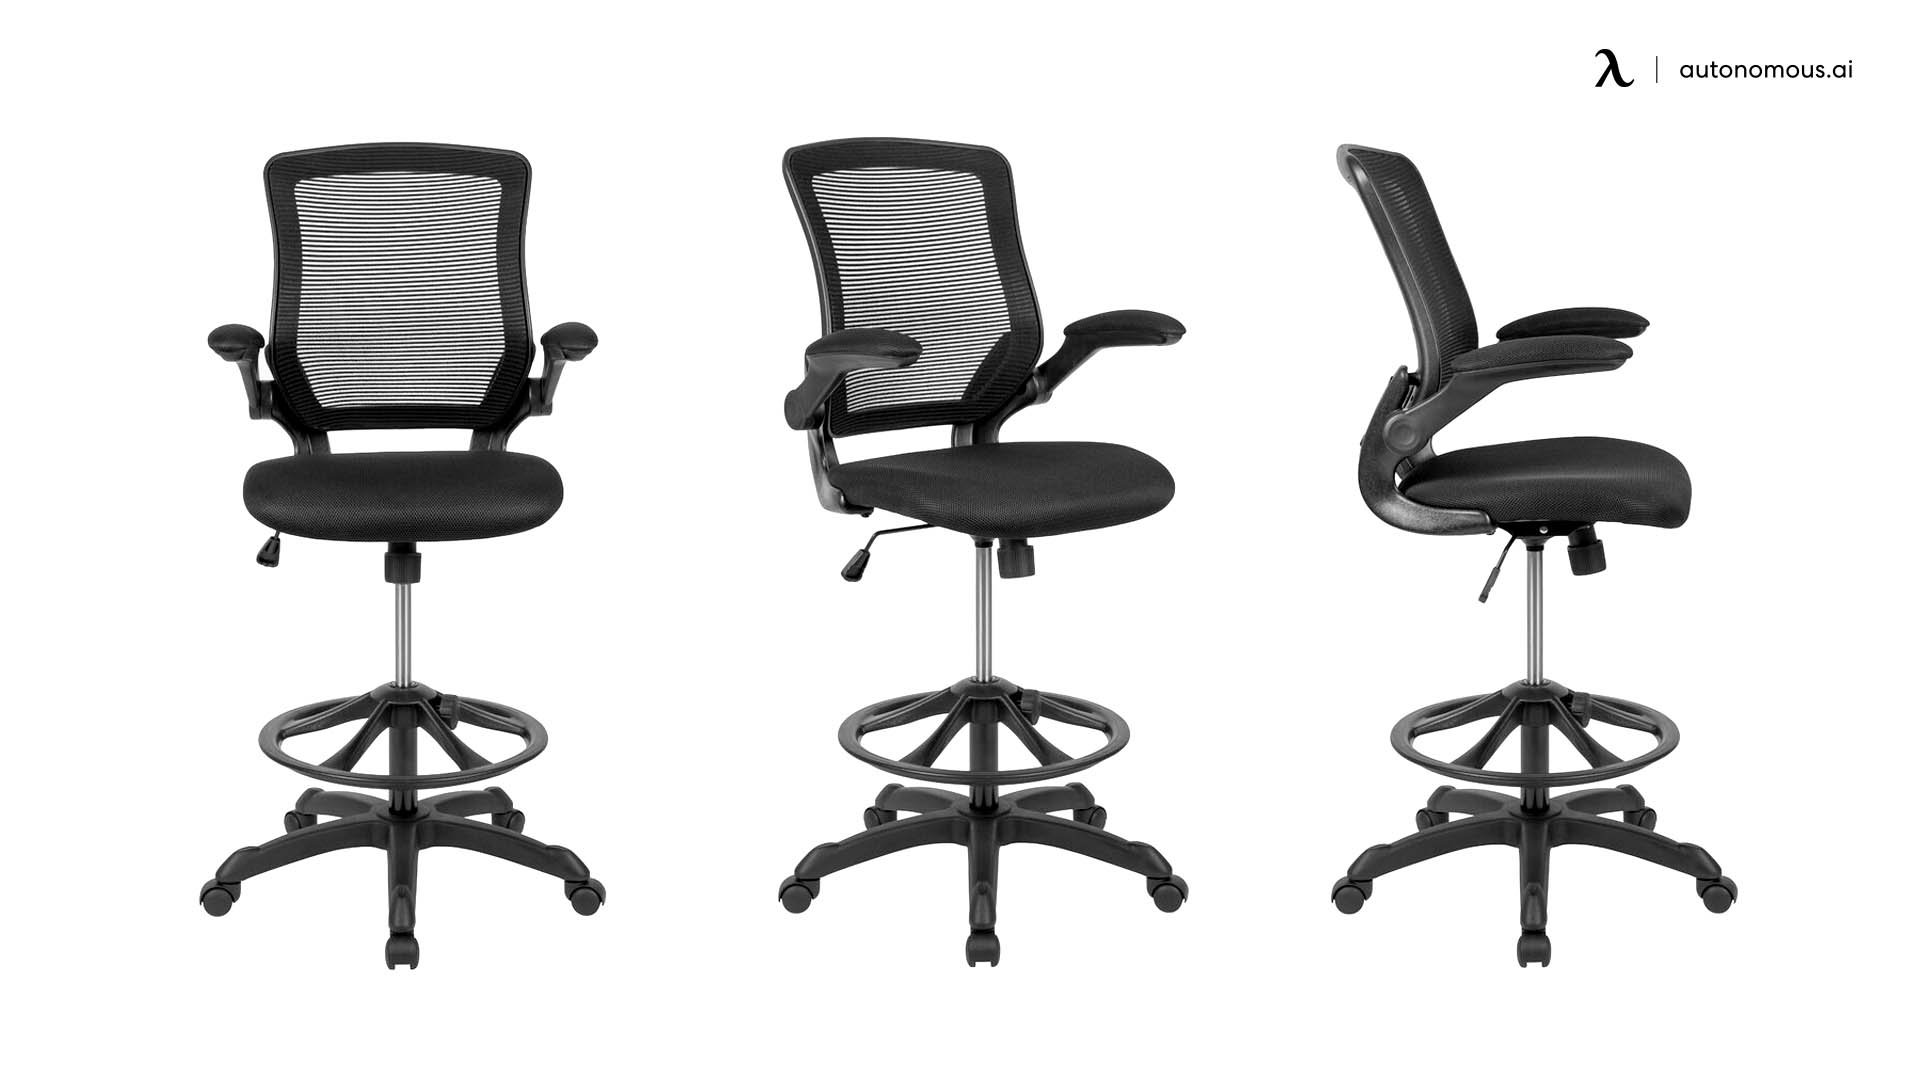 12 Best Active Sitting Chairs to Improve Your Posture & Health